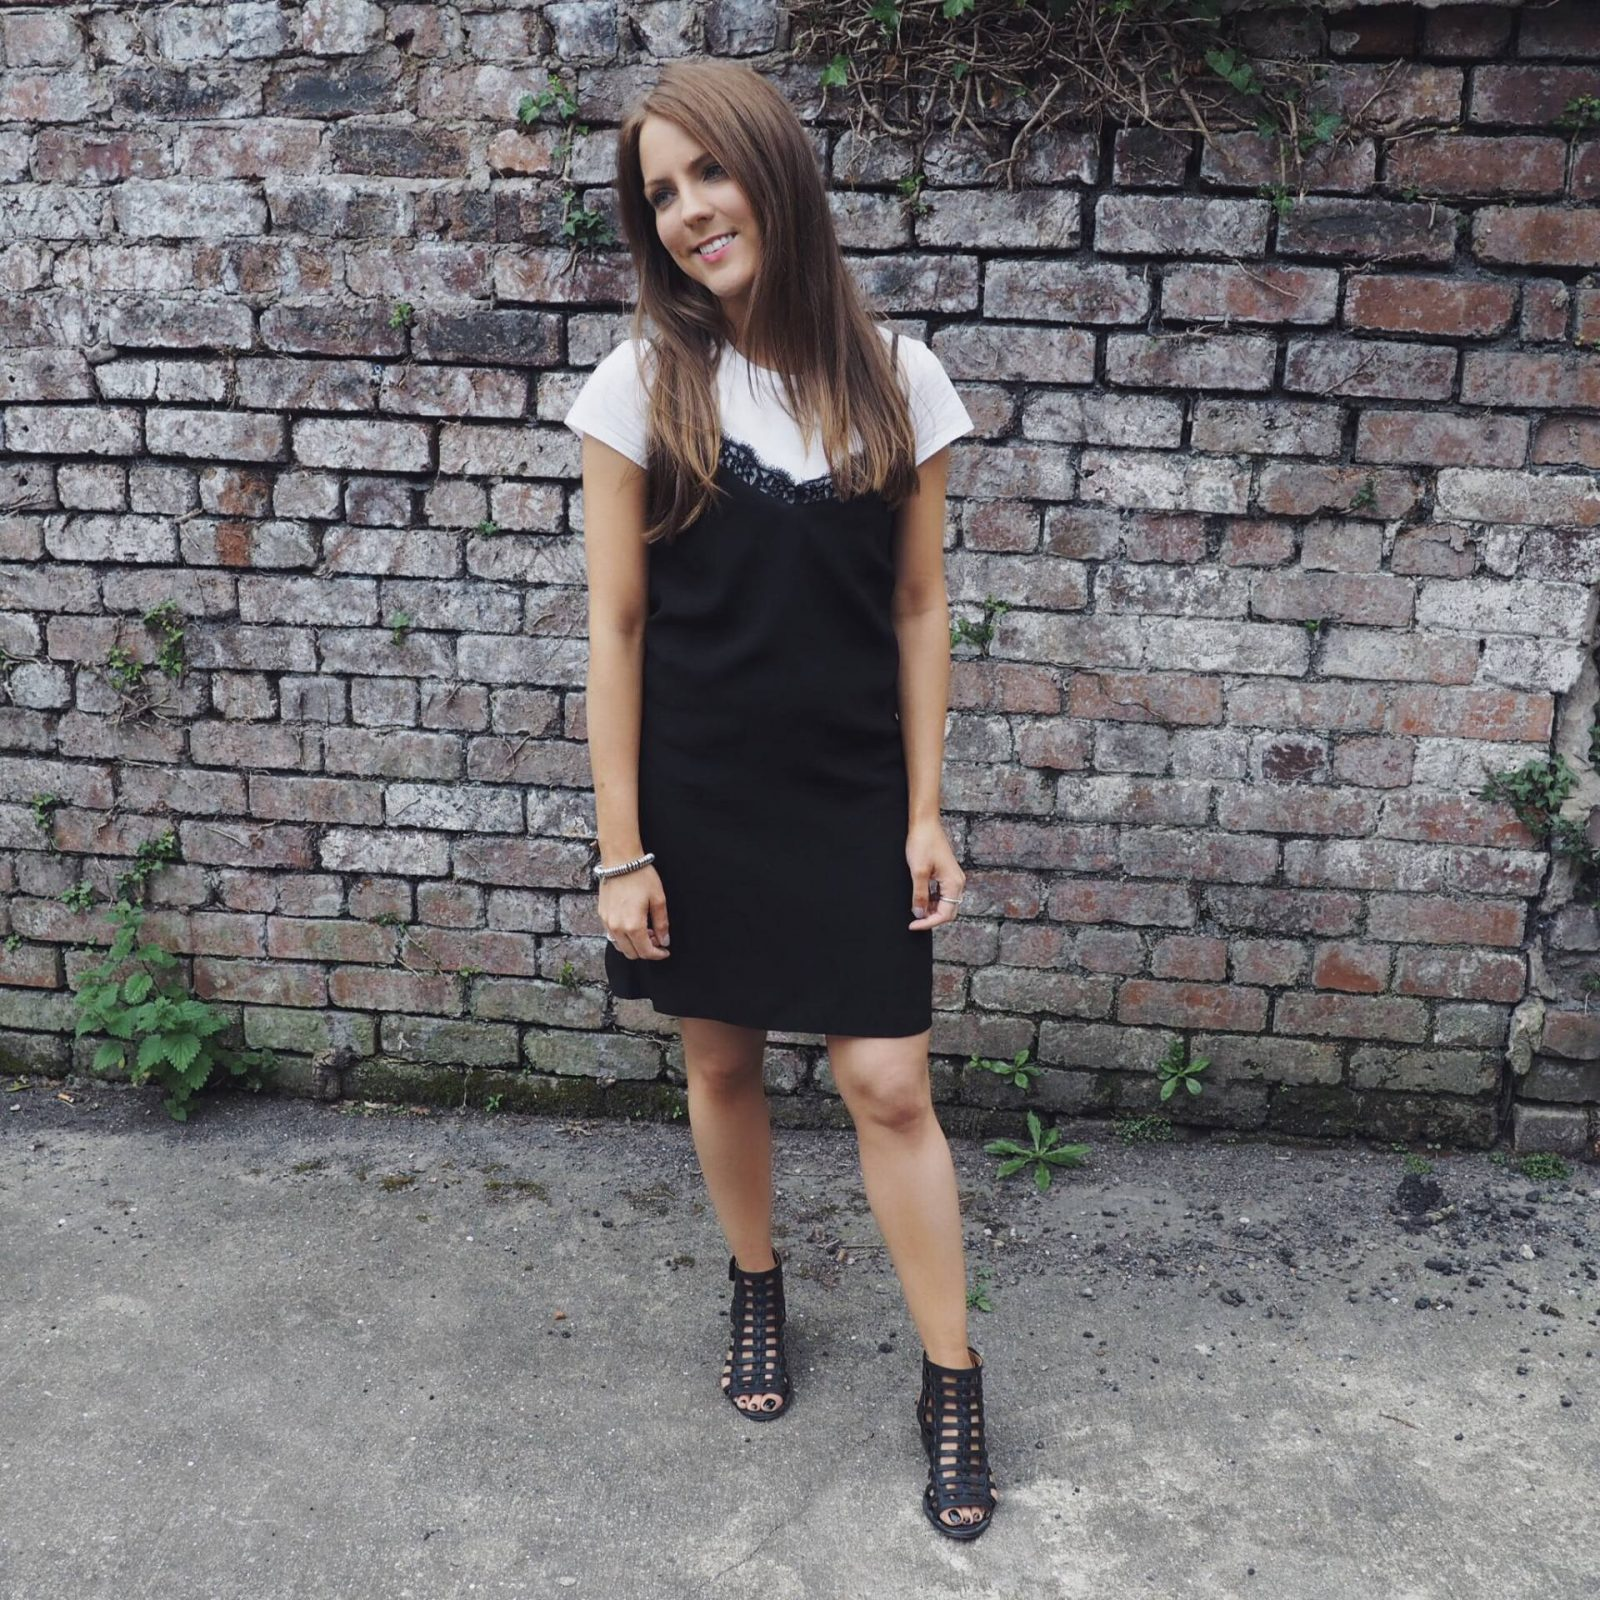 Monochrome look: ASOS black lace slip dress and crop top